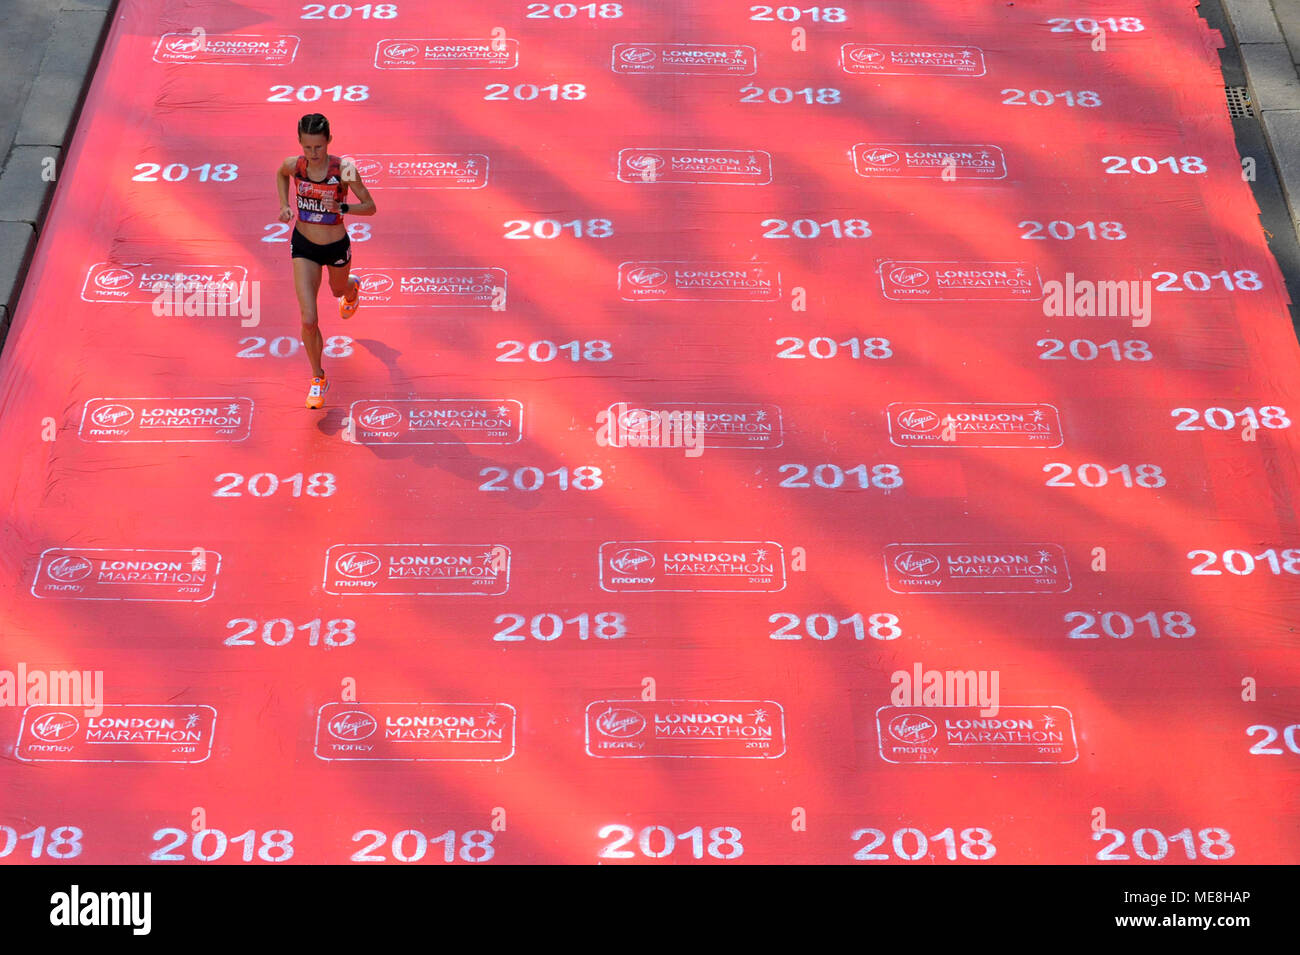 London, UK.  22 April 2018. A runner crosses a red carpet during the 2018 London Marathon. Credit: Stephen Chung / Alamy Live News Stock Photo